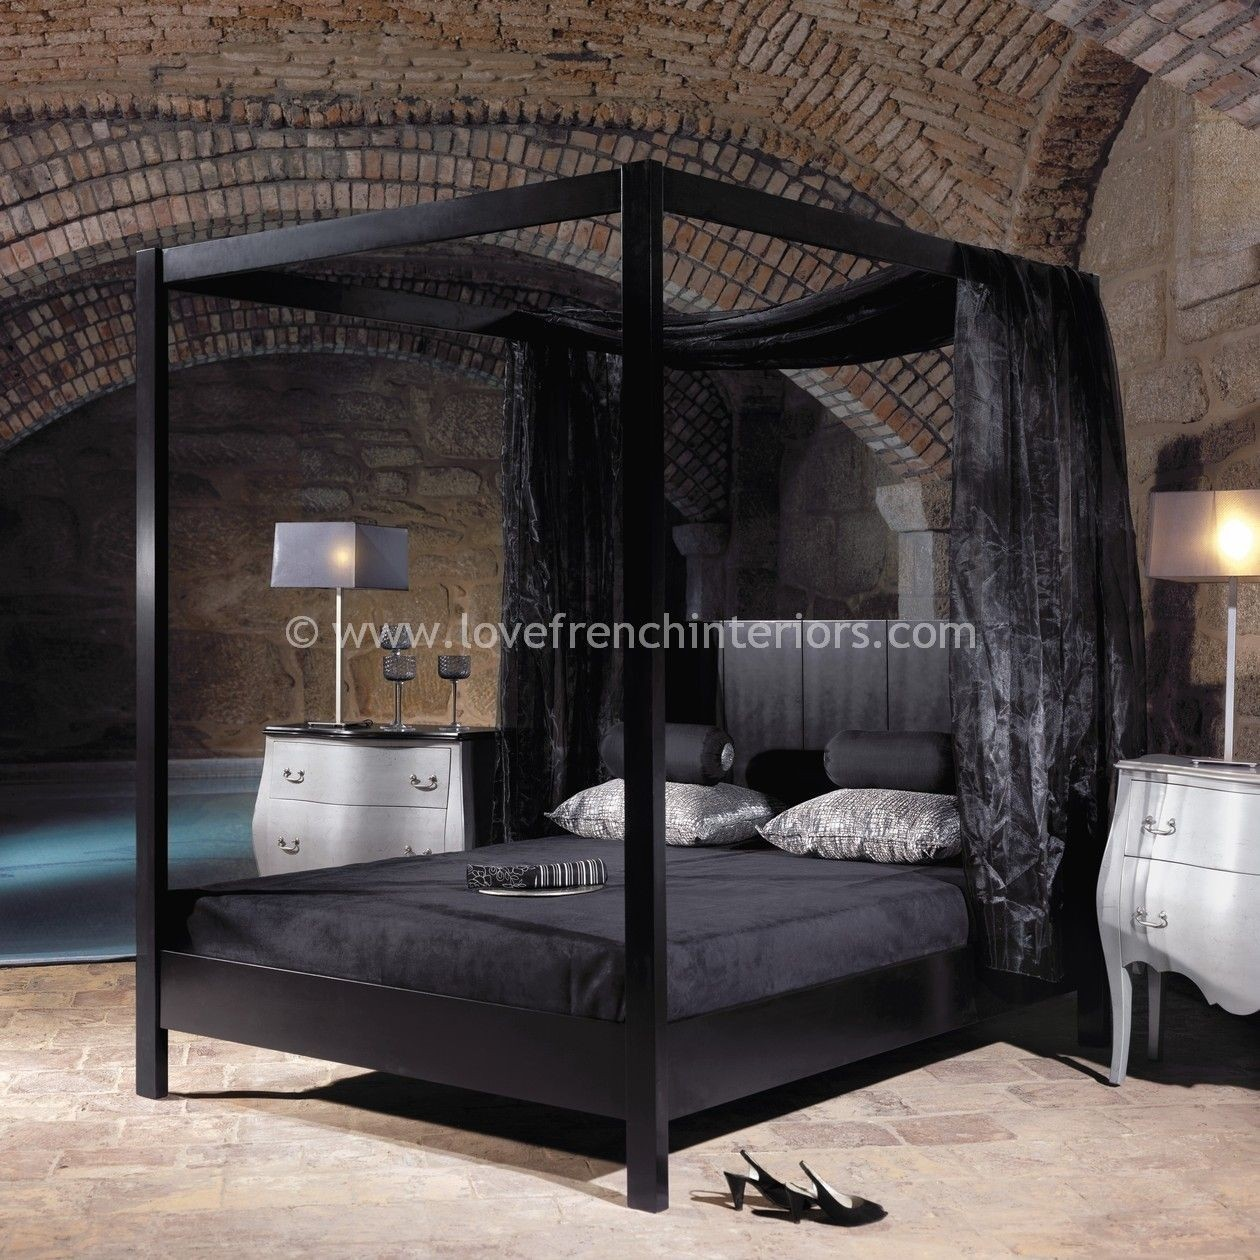 King 4 poster bed & Four Poster King Bed Frame - Foter